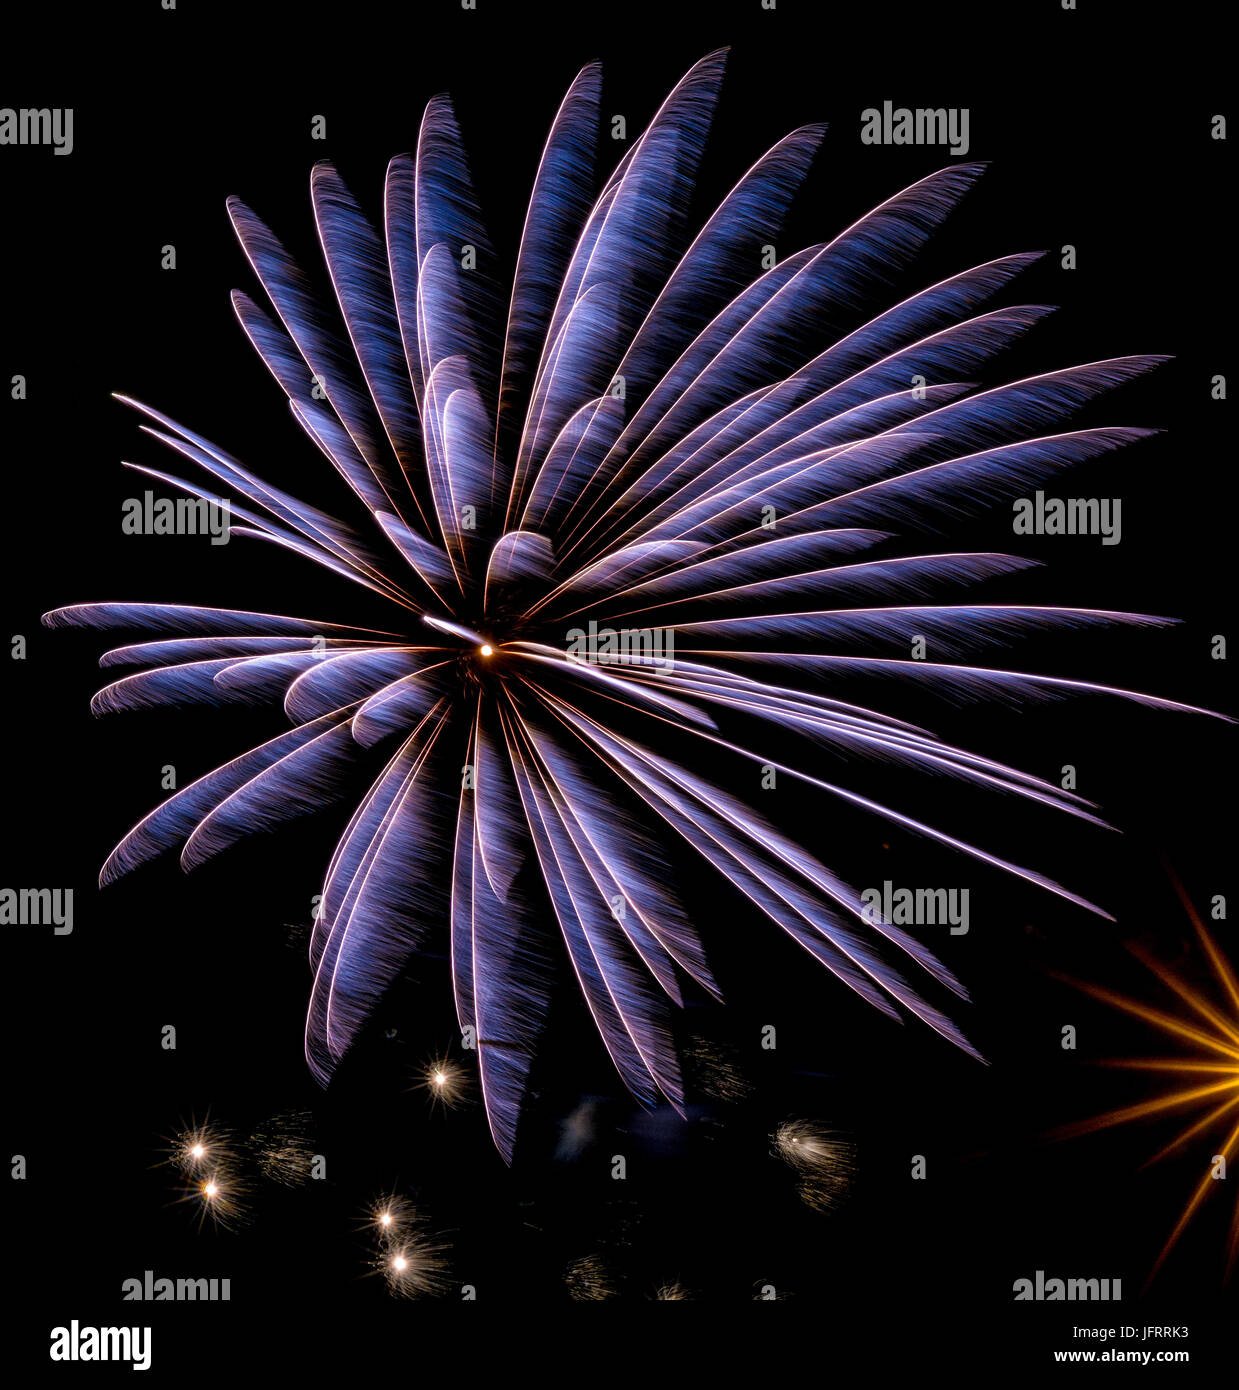 Firework in blue on black background in graphical color painting style - Stock Image